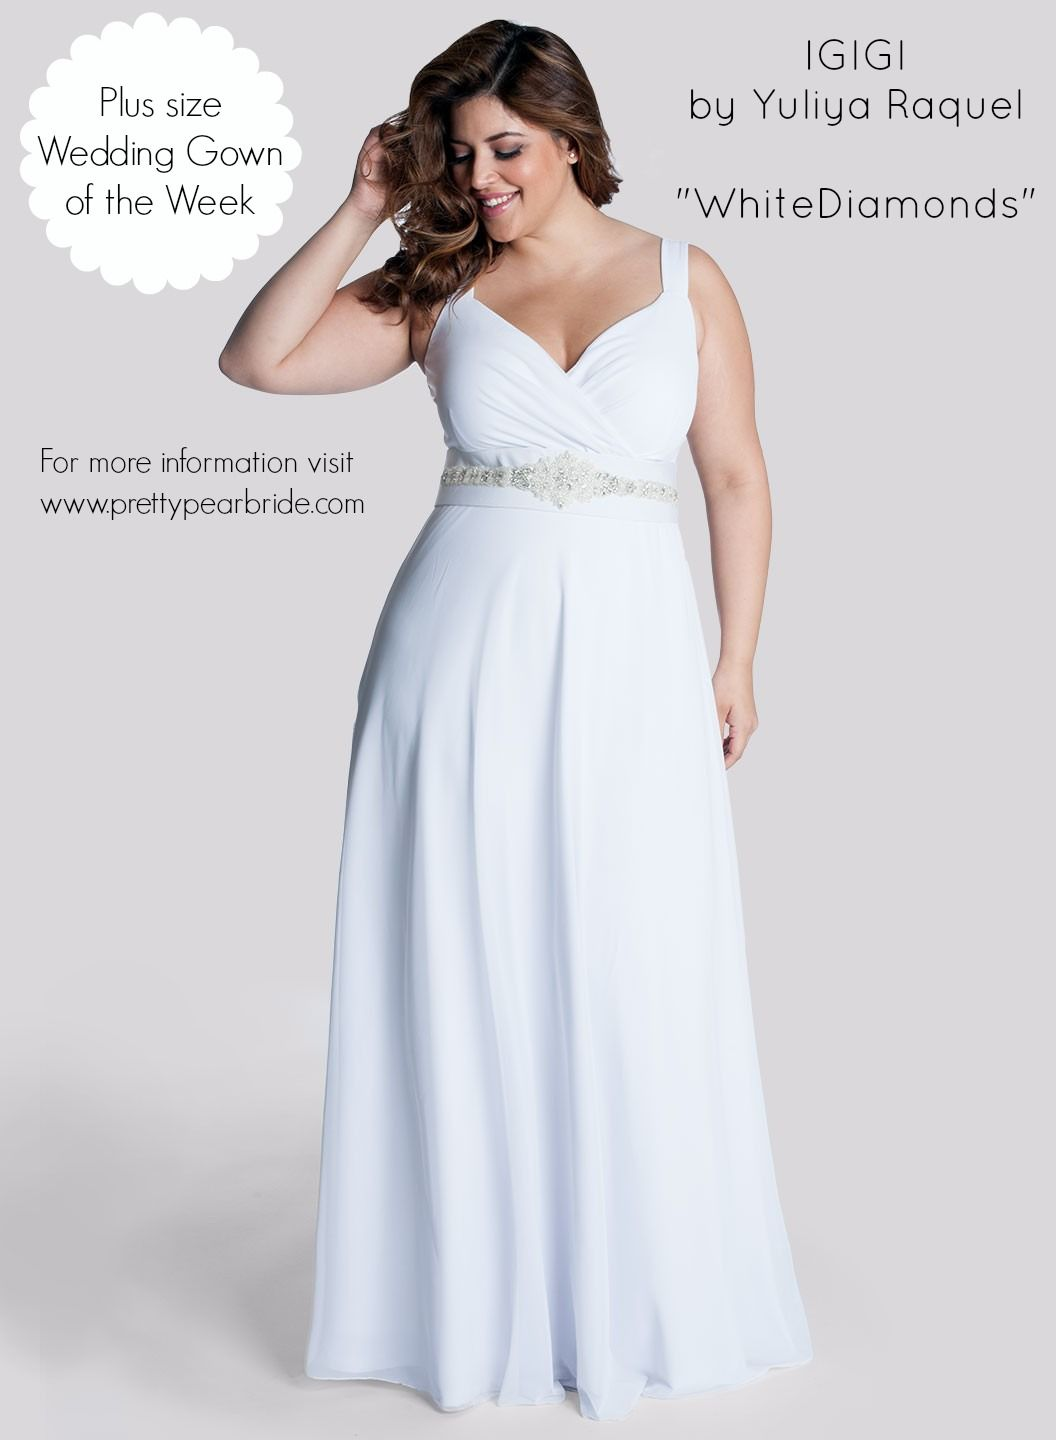 Plus Size Wedding Dress of the Week} IGIGI ~ White Diamonds ...